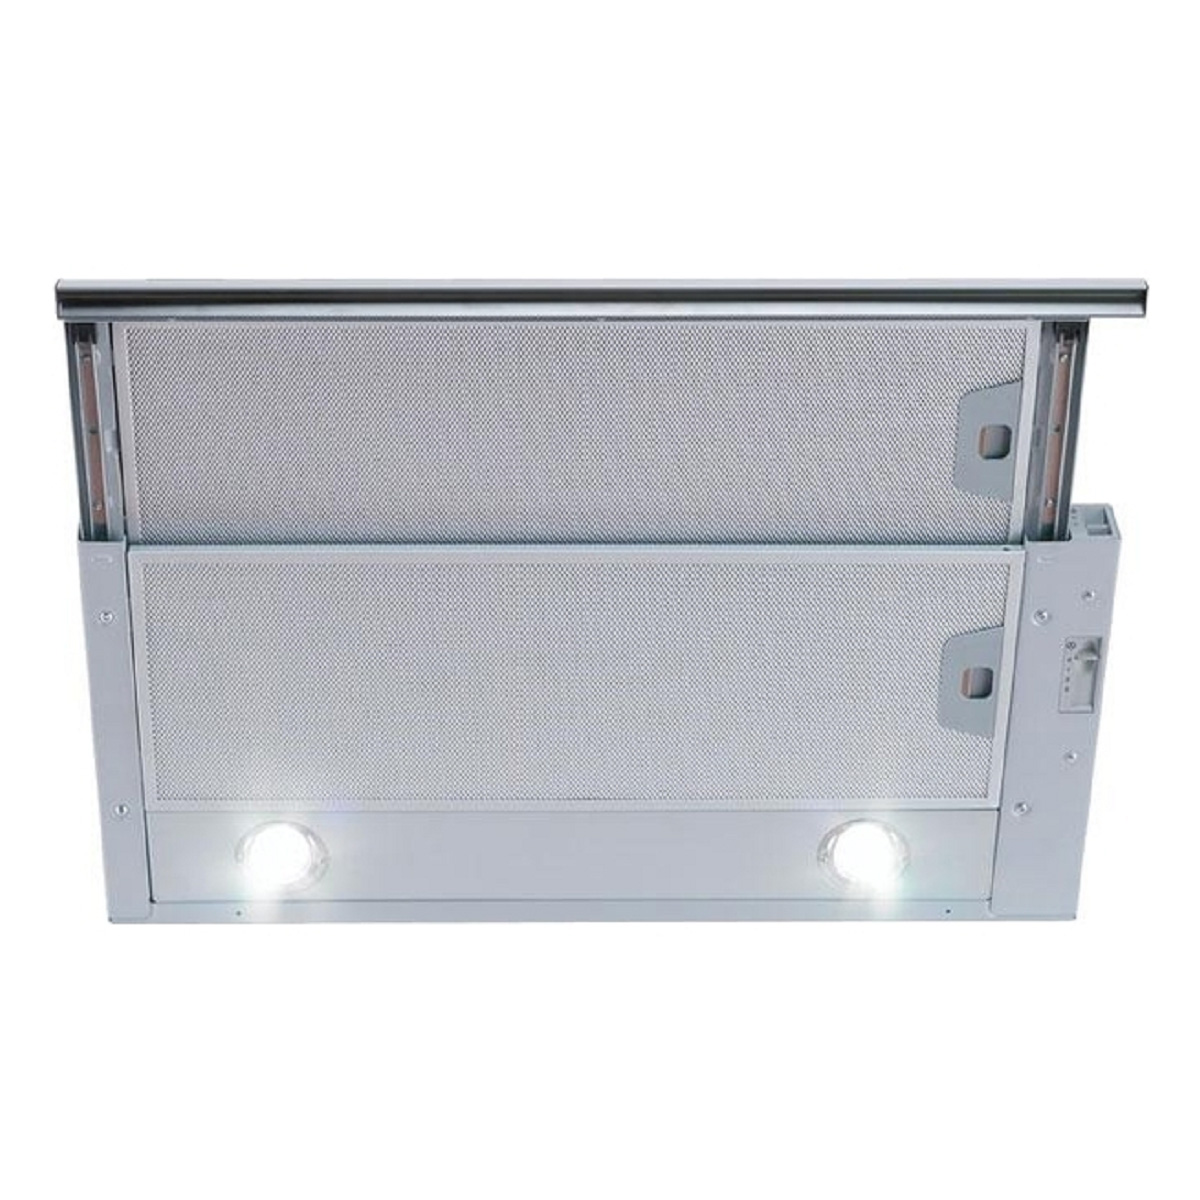 St George Slide Out Rangehood 6516100